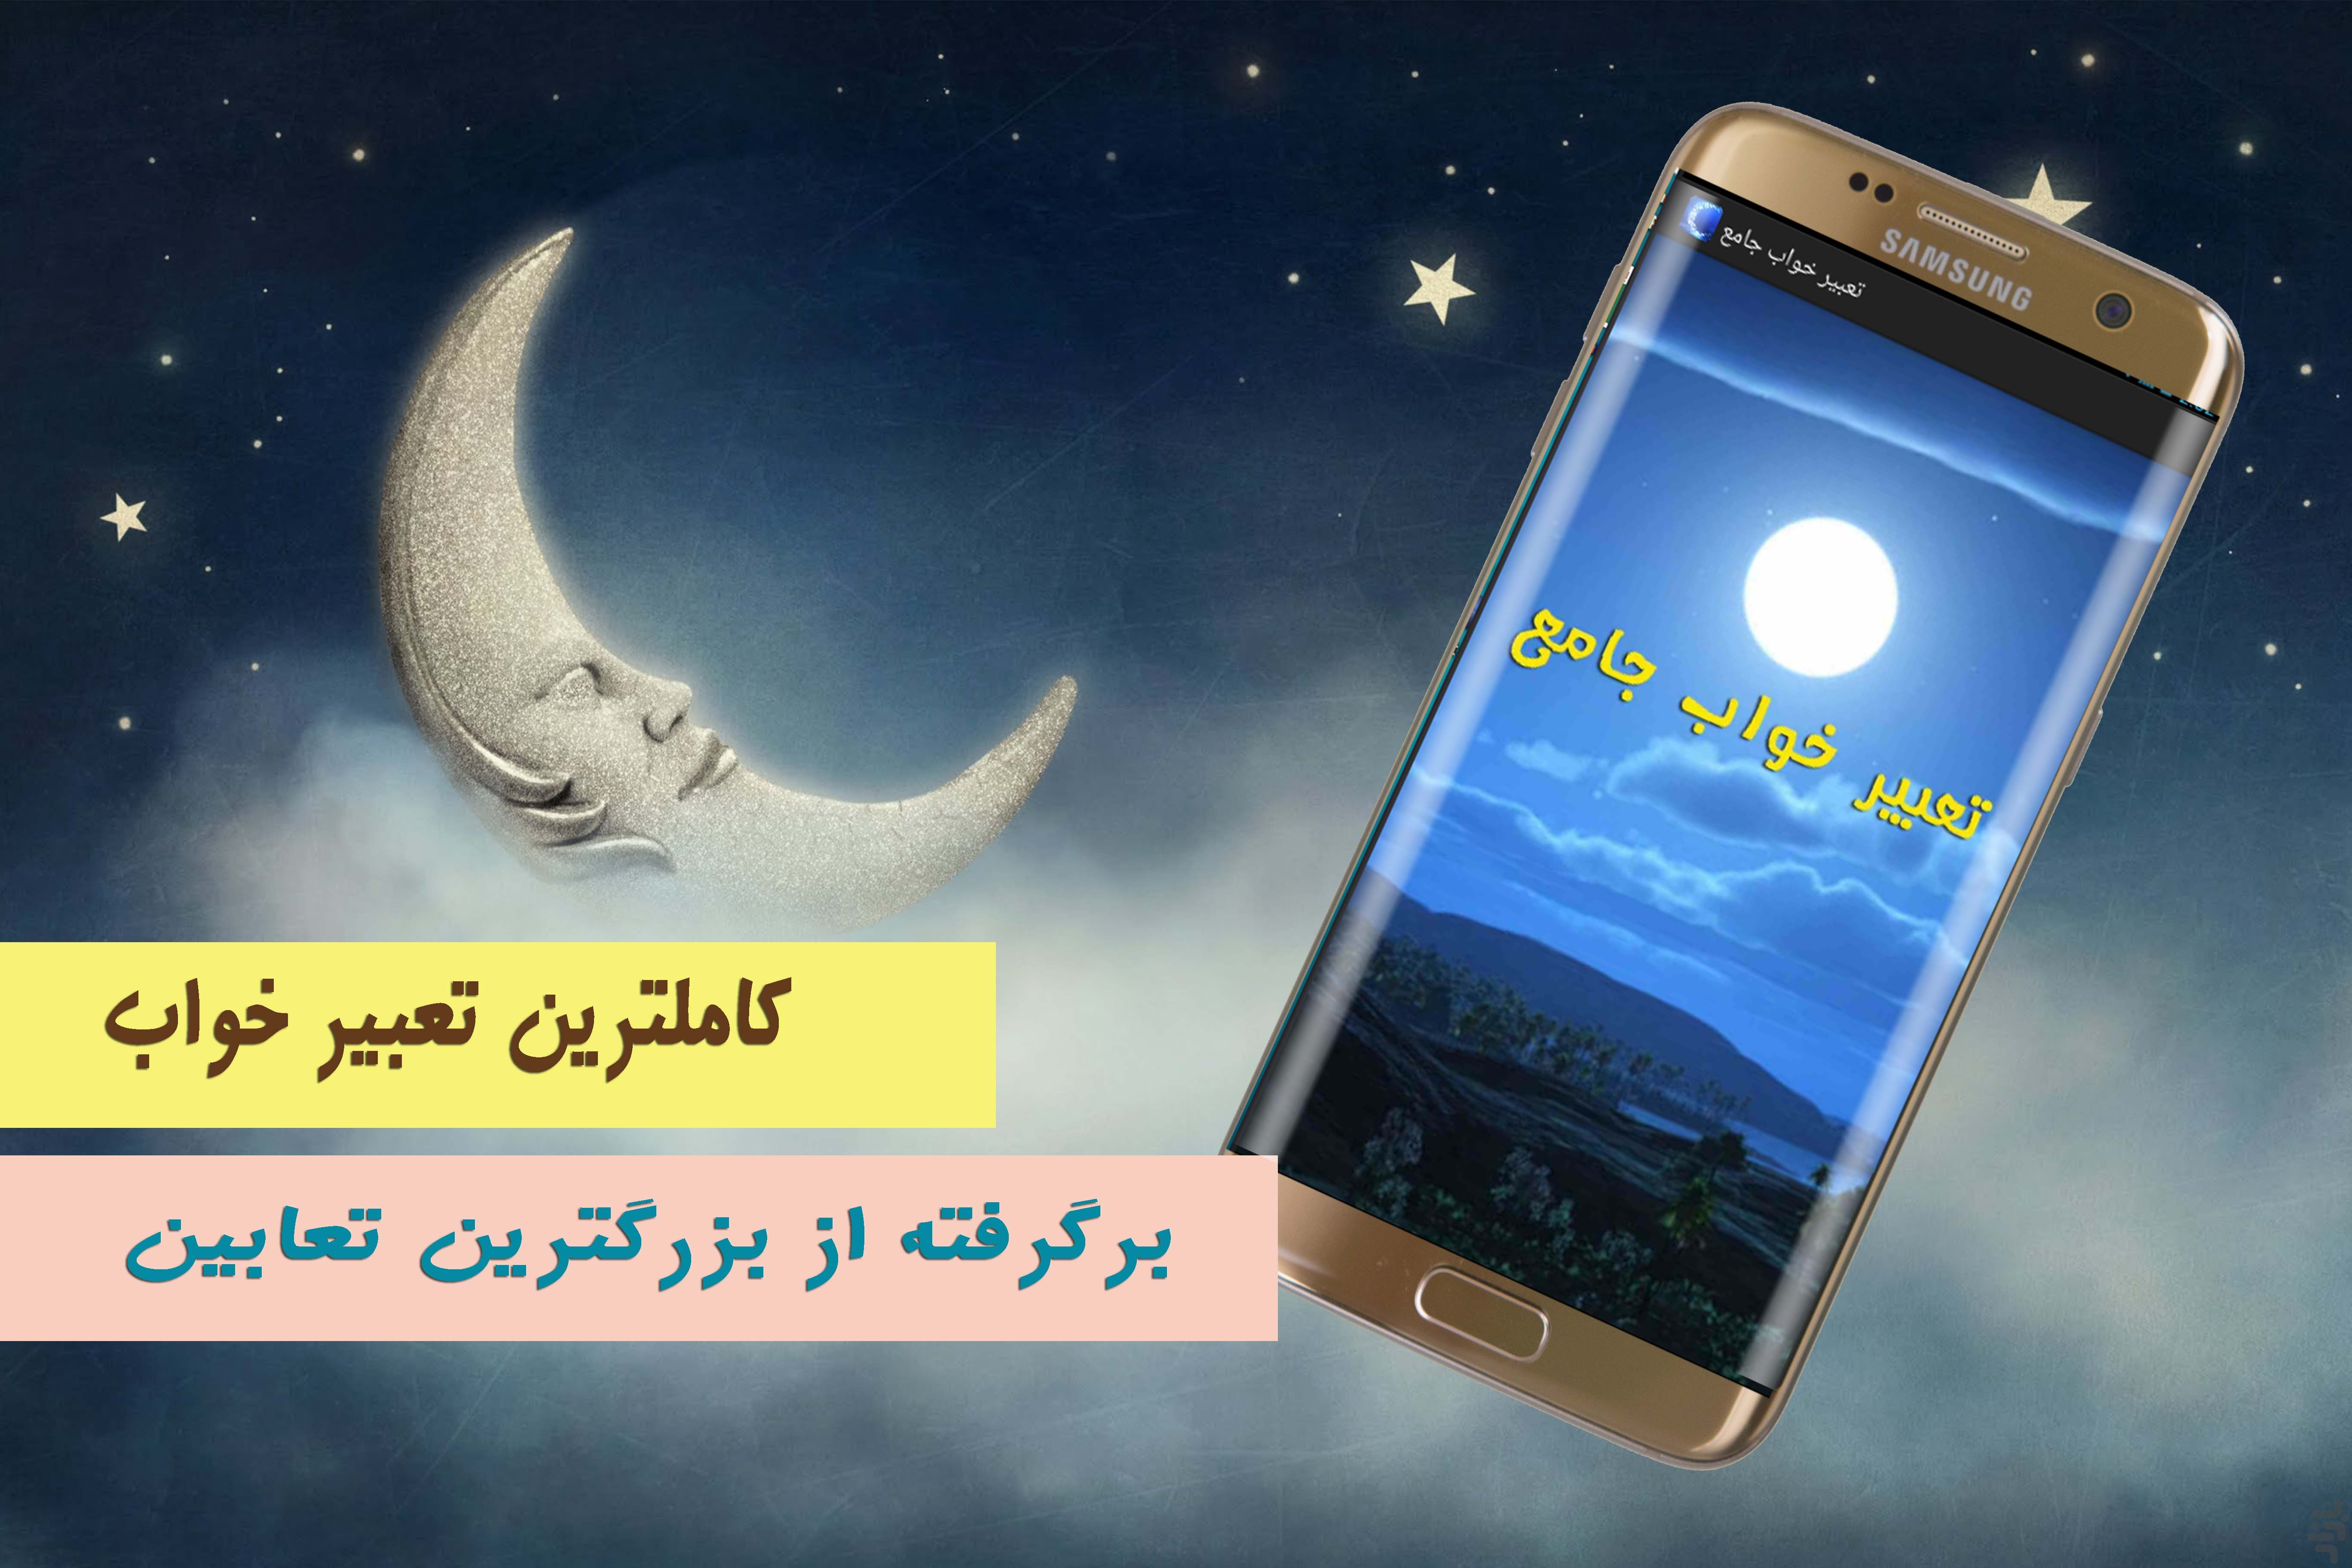 تعبیر خواب مورچه  صادق TabirKhab App Ranking and Store Data App Annie